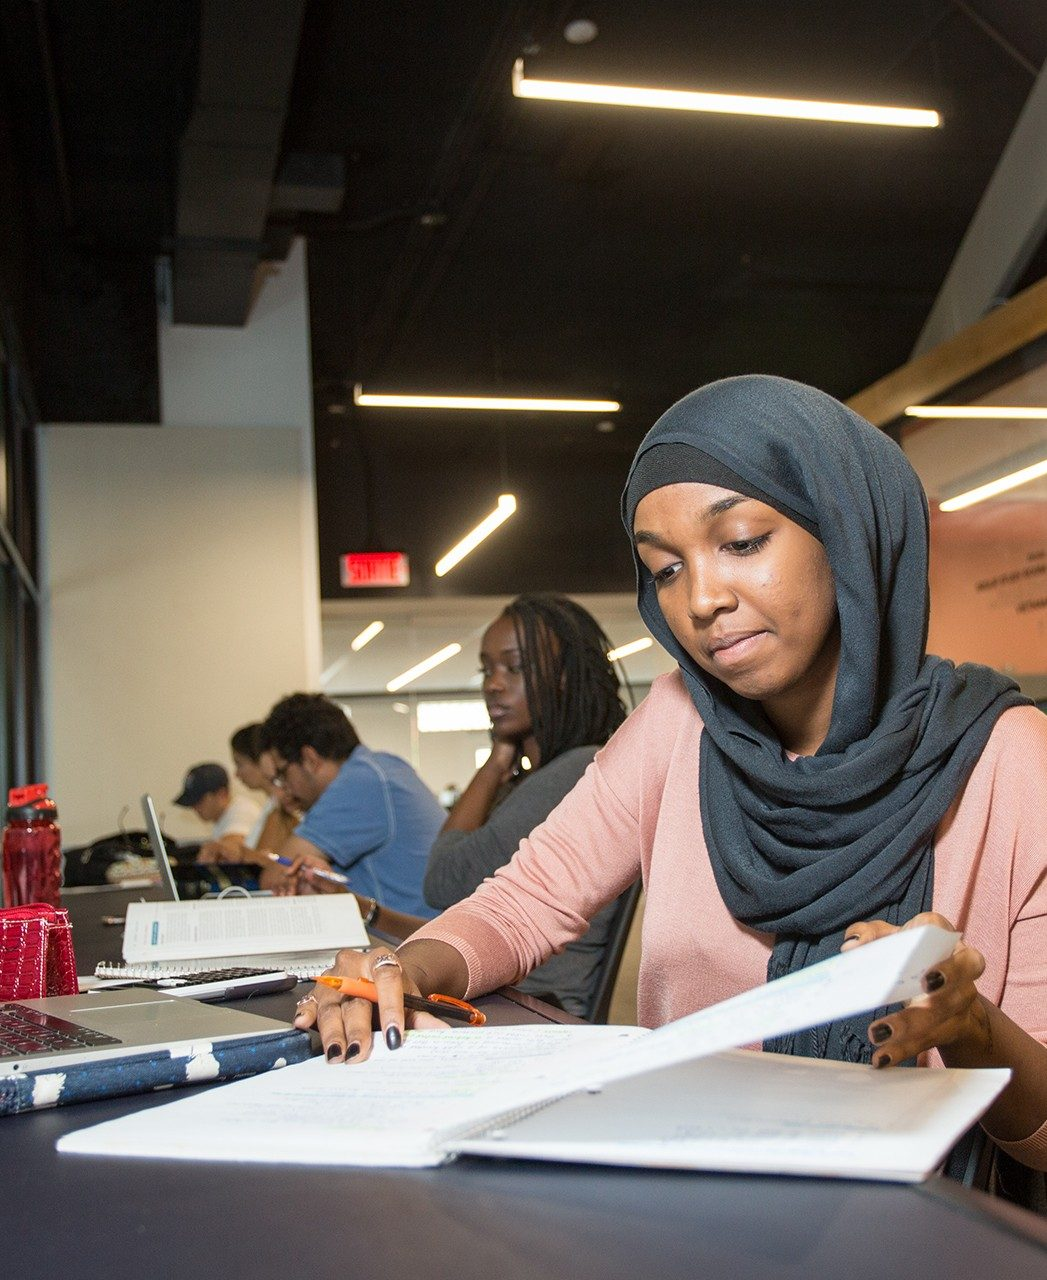 A student wearing a hijab reads a page in a notebook and other students study nearby